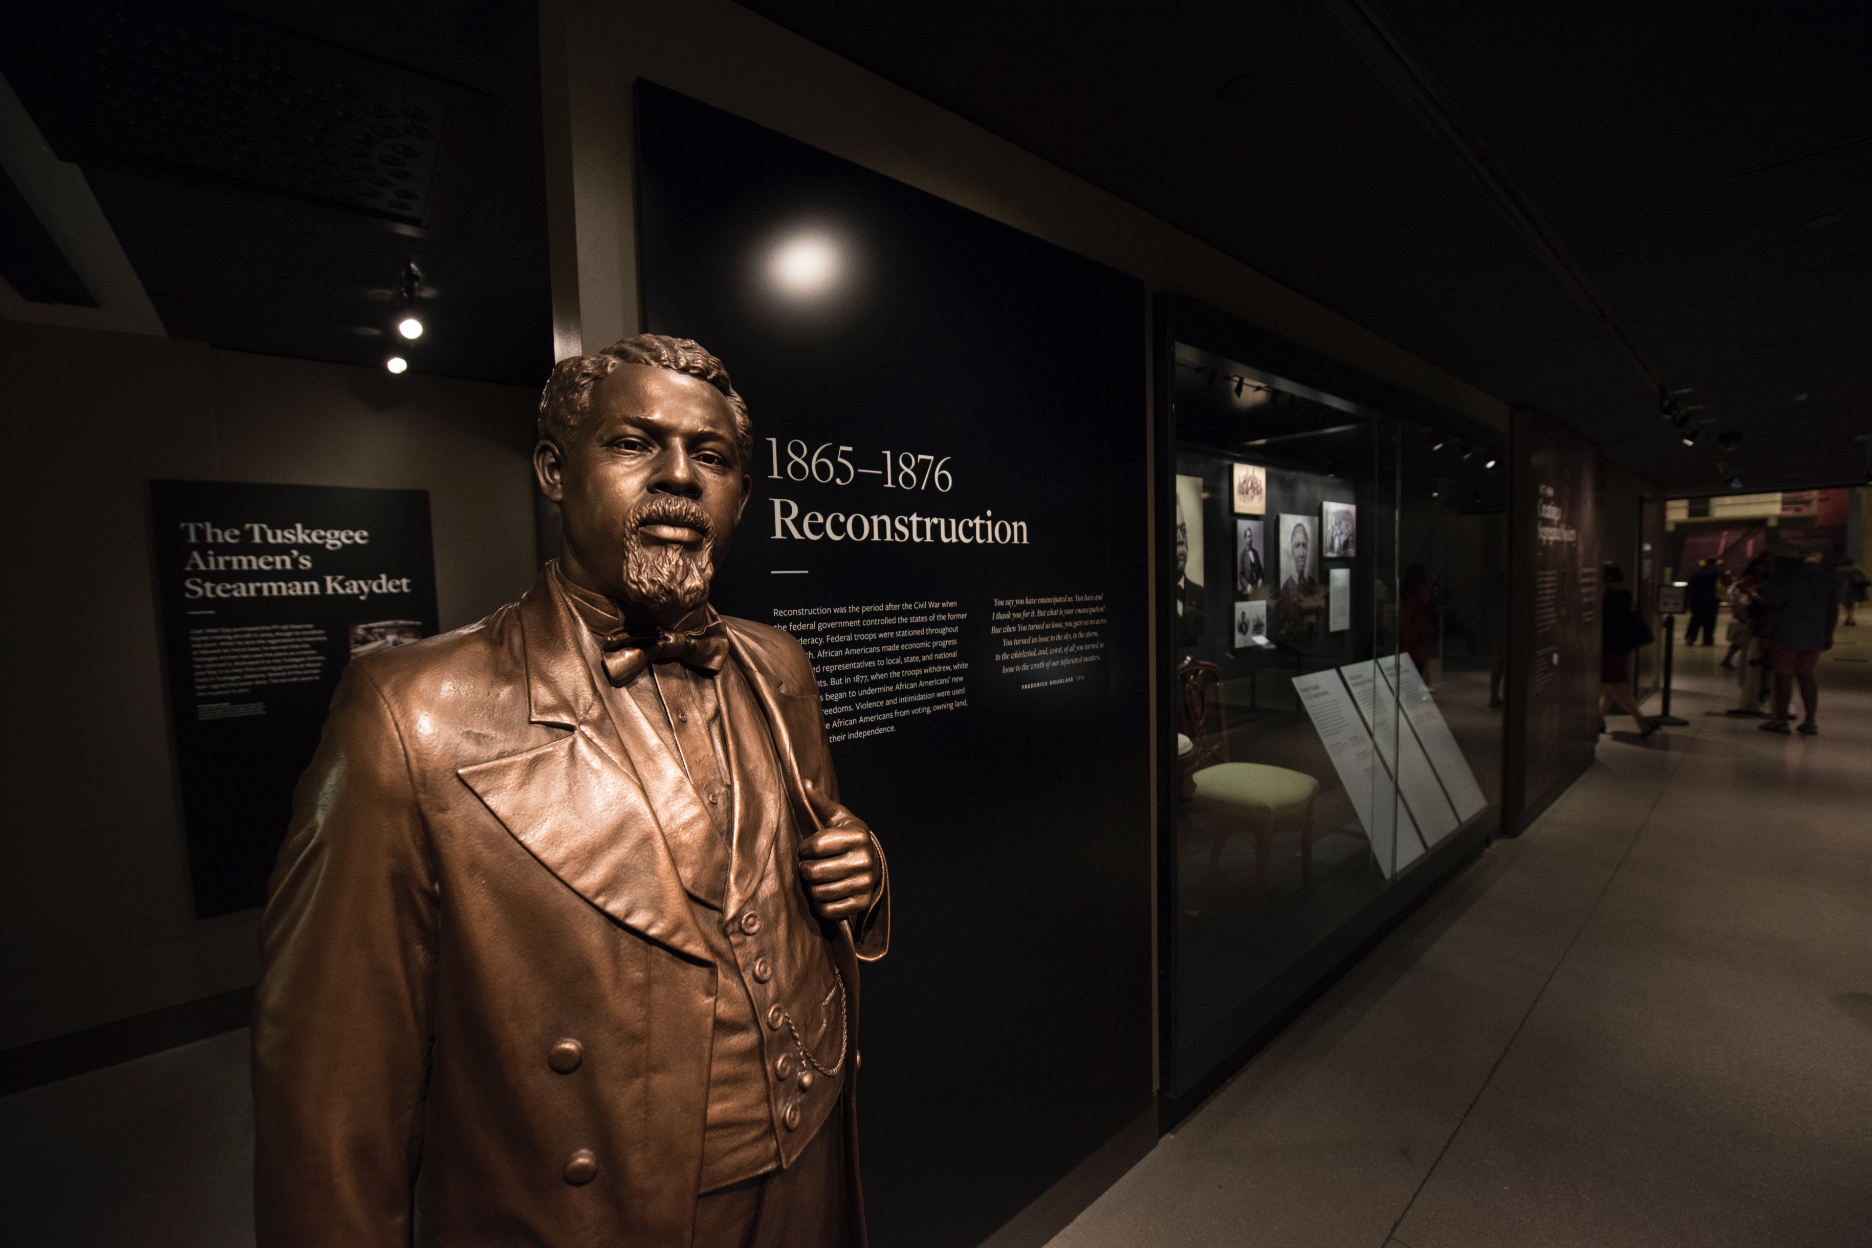 RECONSTRUCTION INTRODUCTION AND STATUE OF R OBERT SMALLS. Robert Smalls was an enslaved African American who, during and after the American Civil War, gained freedom and became a ship's pilot, sea captain, and politician. Photo credit: Luka Kito